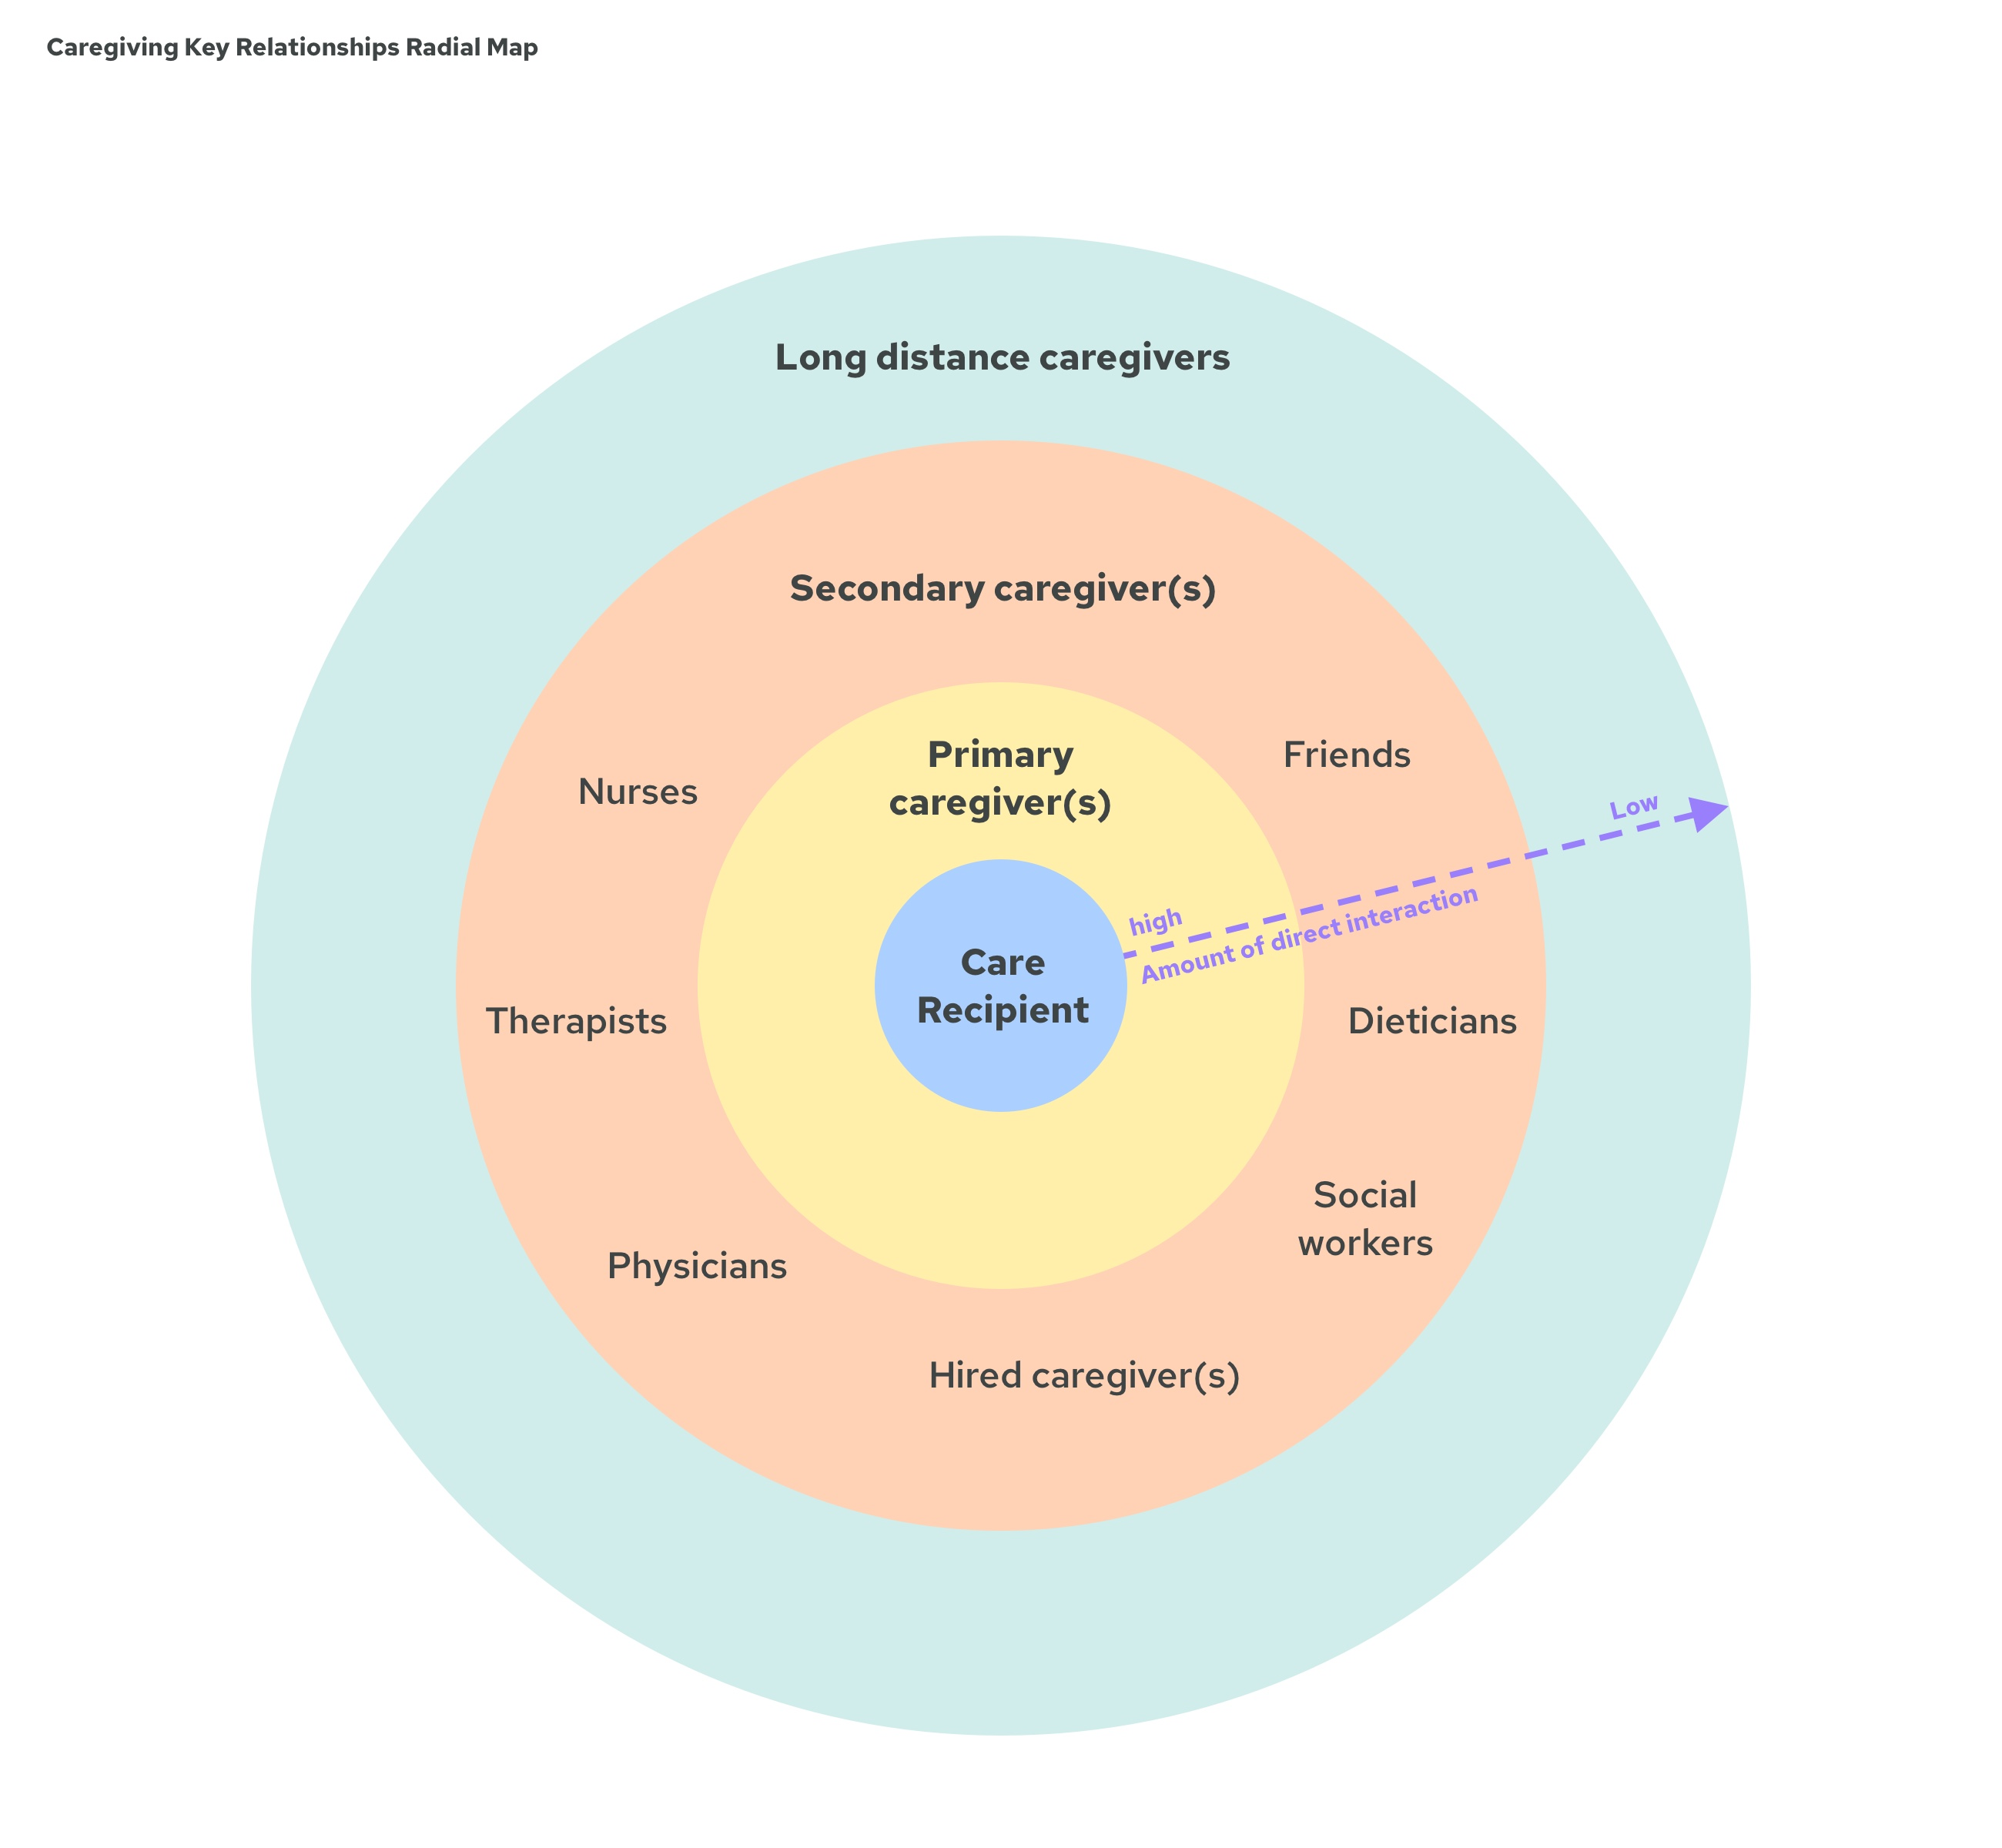 Caregiving Key Relationships Radial Map